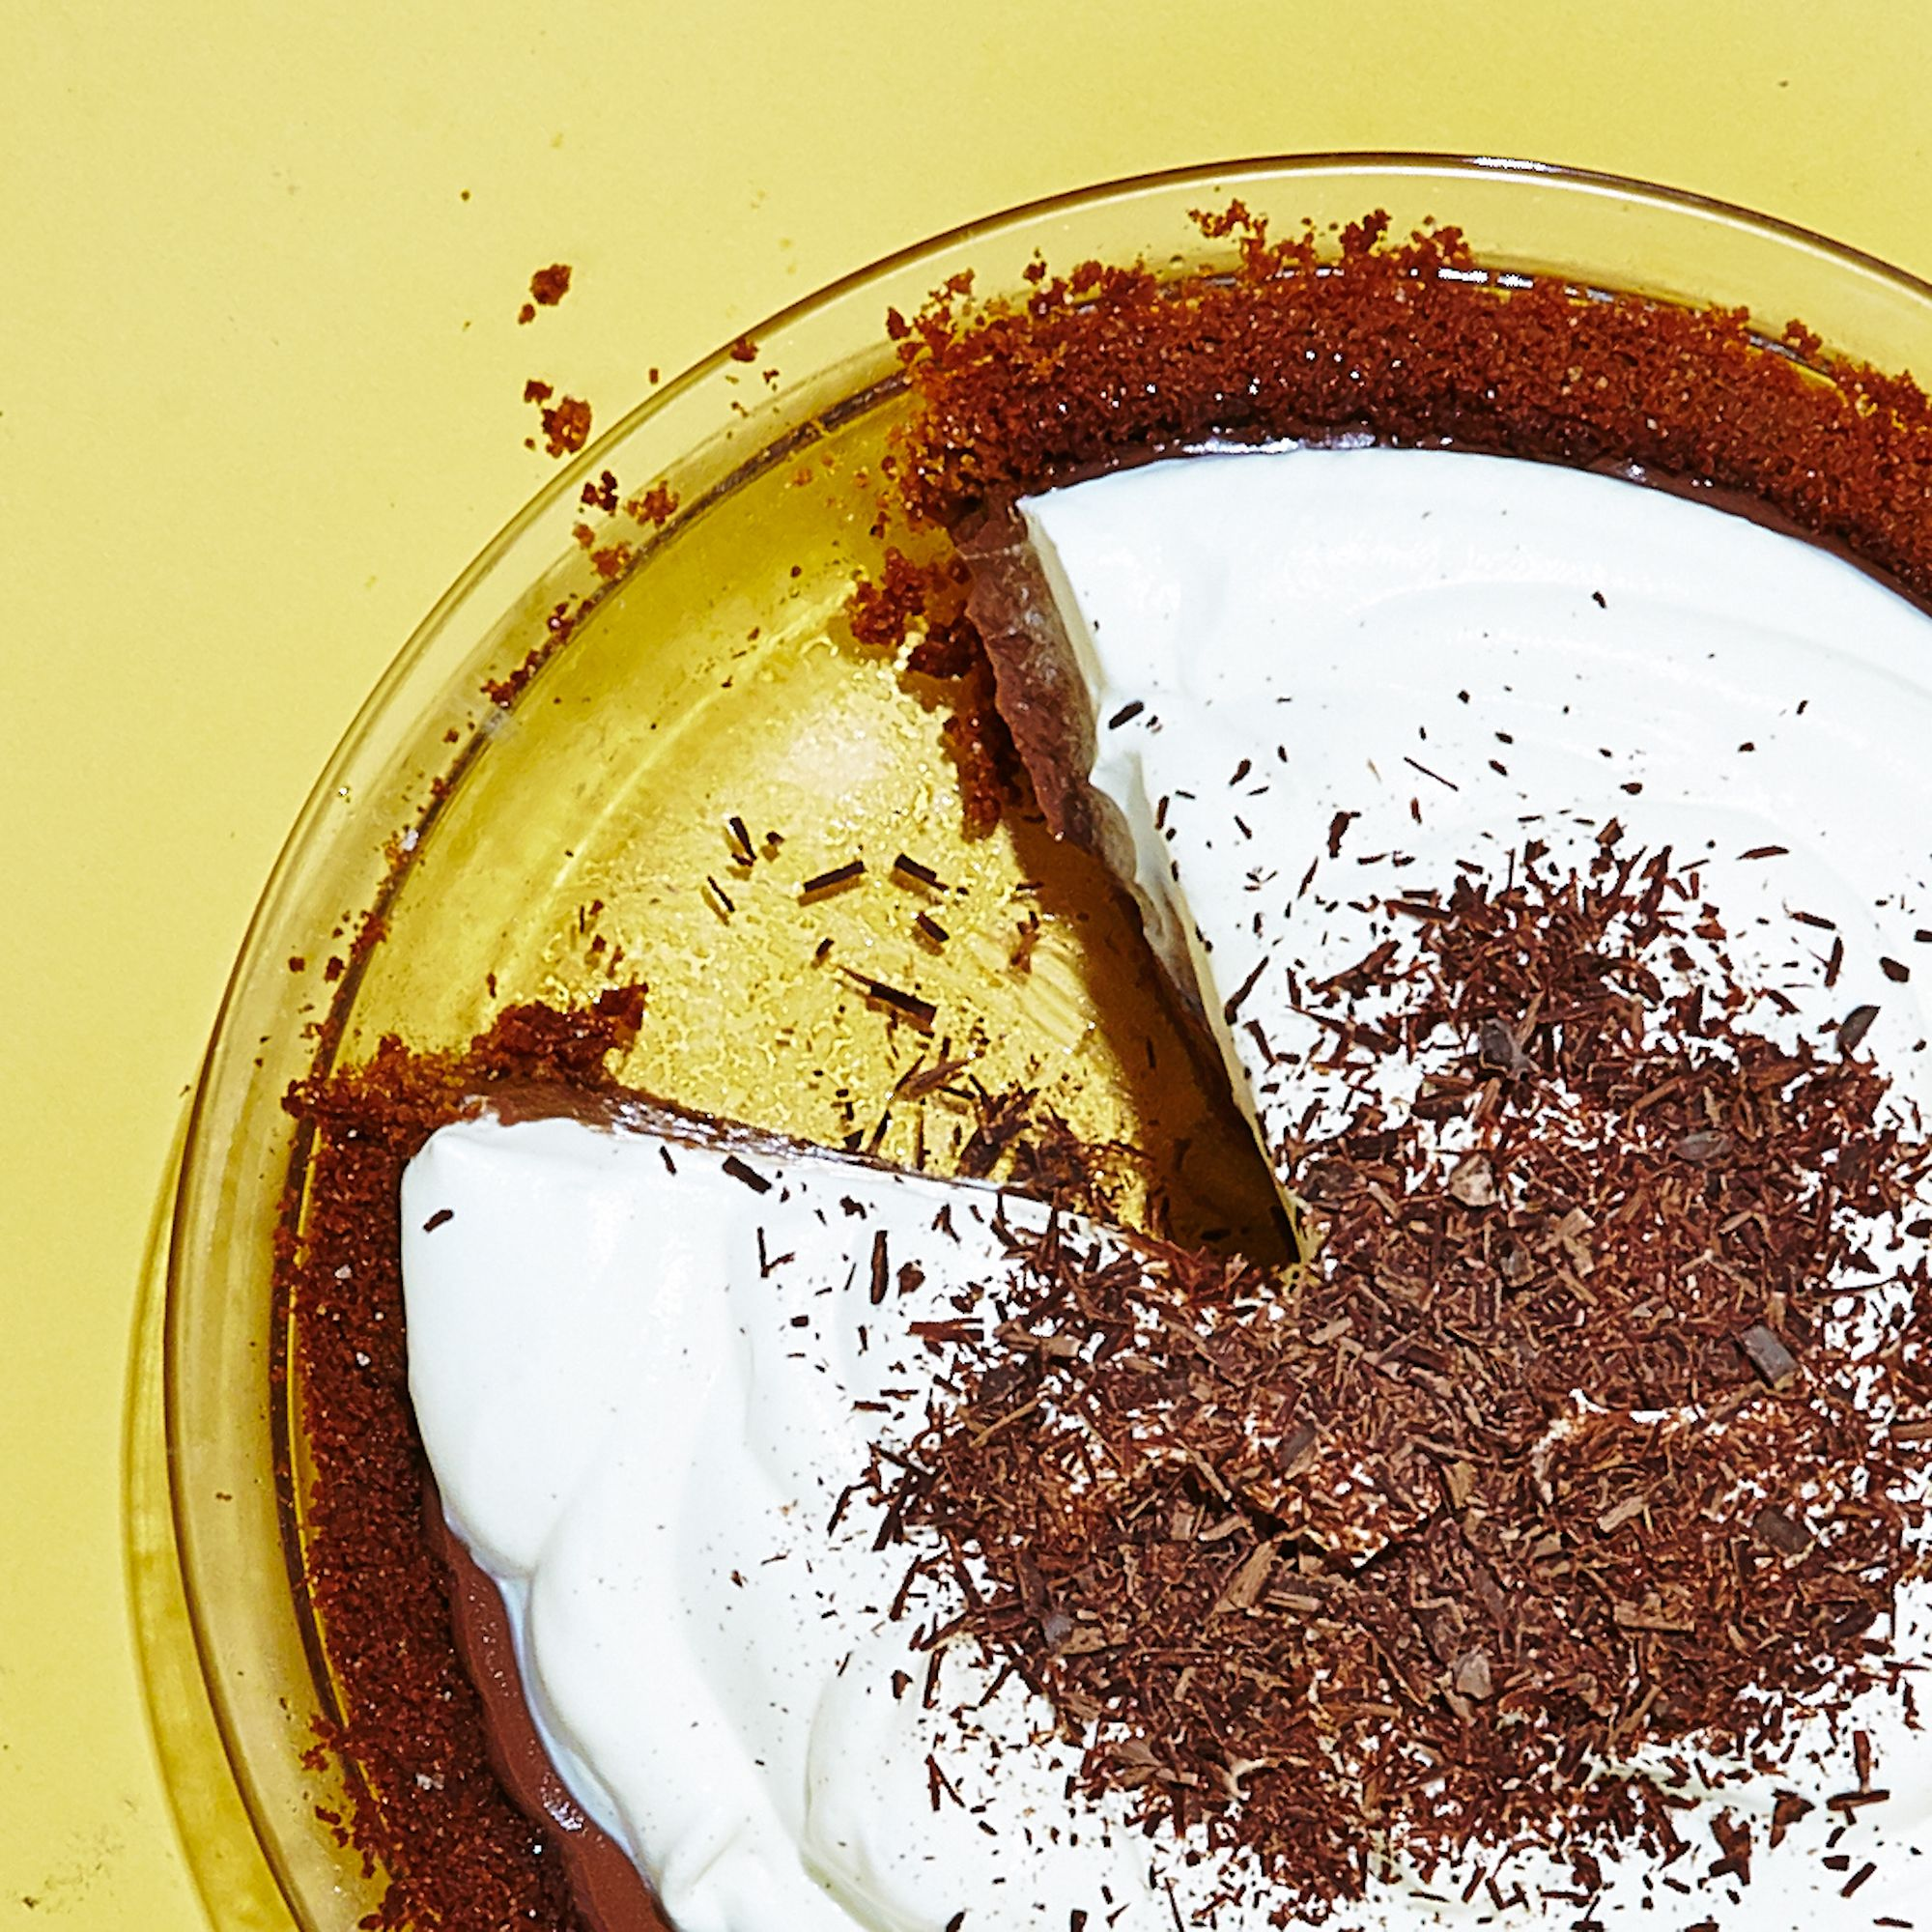 Gingersnaps add an unexpected zing and are a great foil to the richness of this chocolatey pie. Sub in gluten-free graham crackers if you prefer.